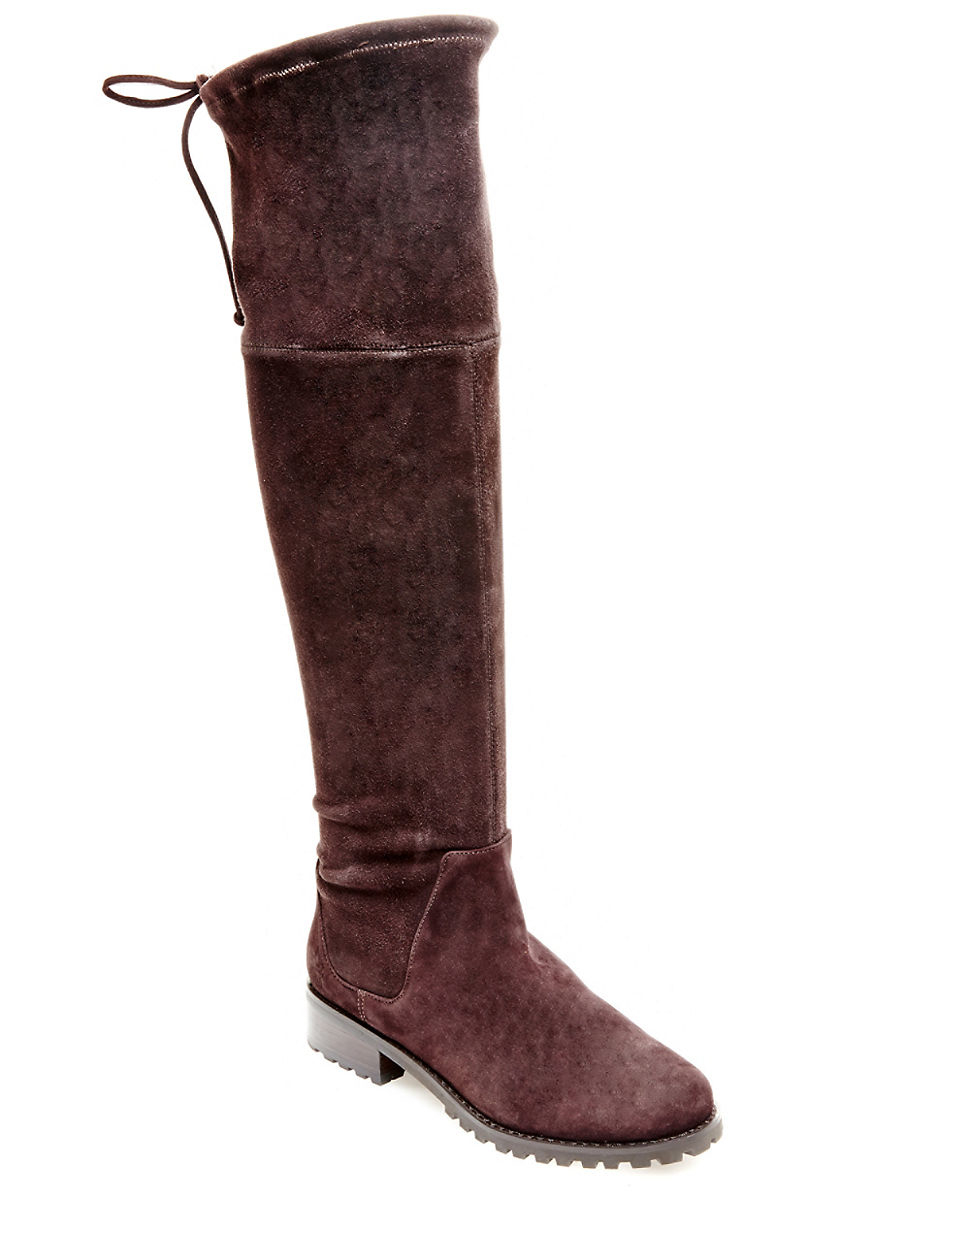 Find great deals on eBay for brown suede knee high boots. Shop with confidence.